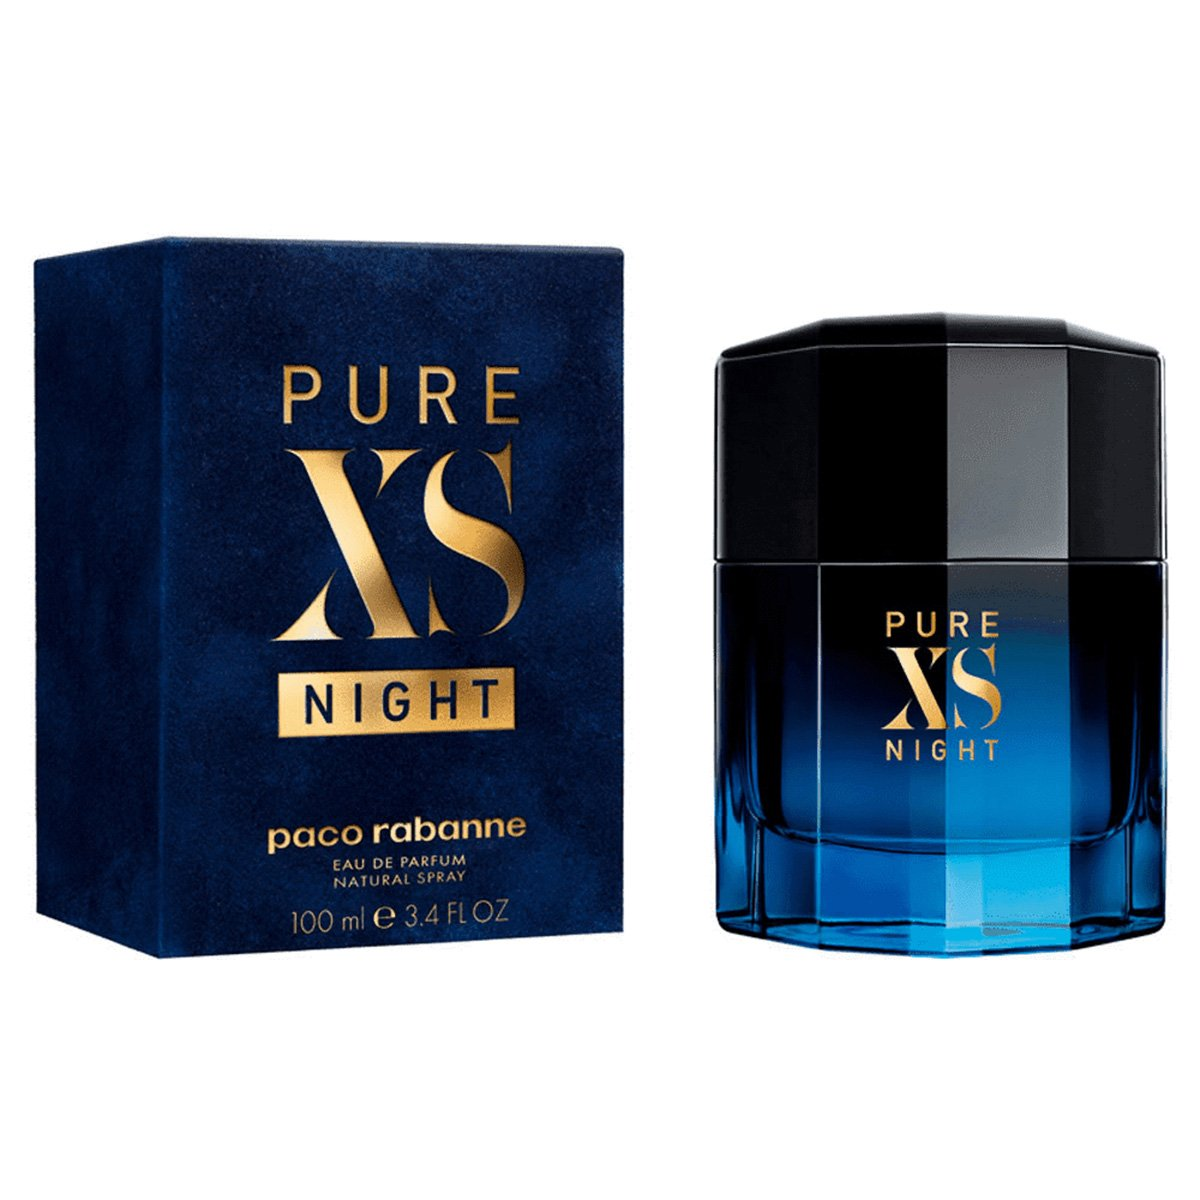 Perfume Paco Rabanne Pure XS Night EDP Masculino 100ml